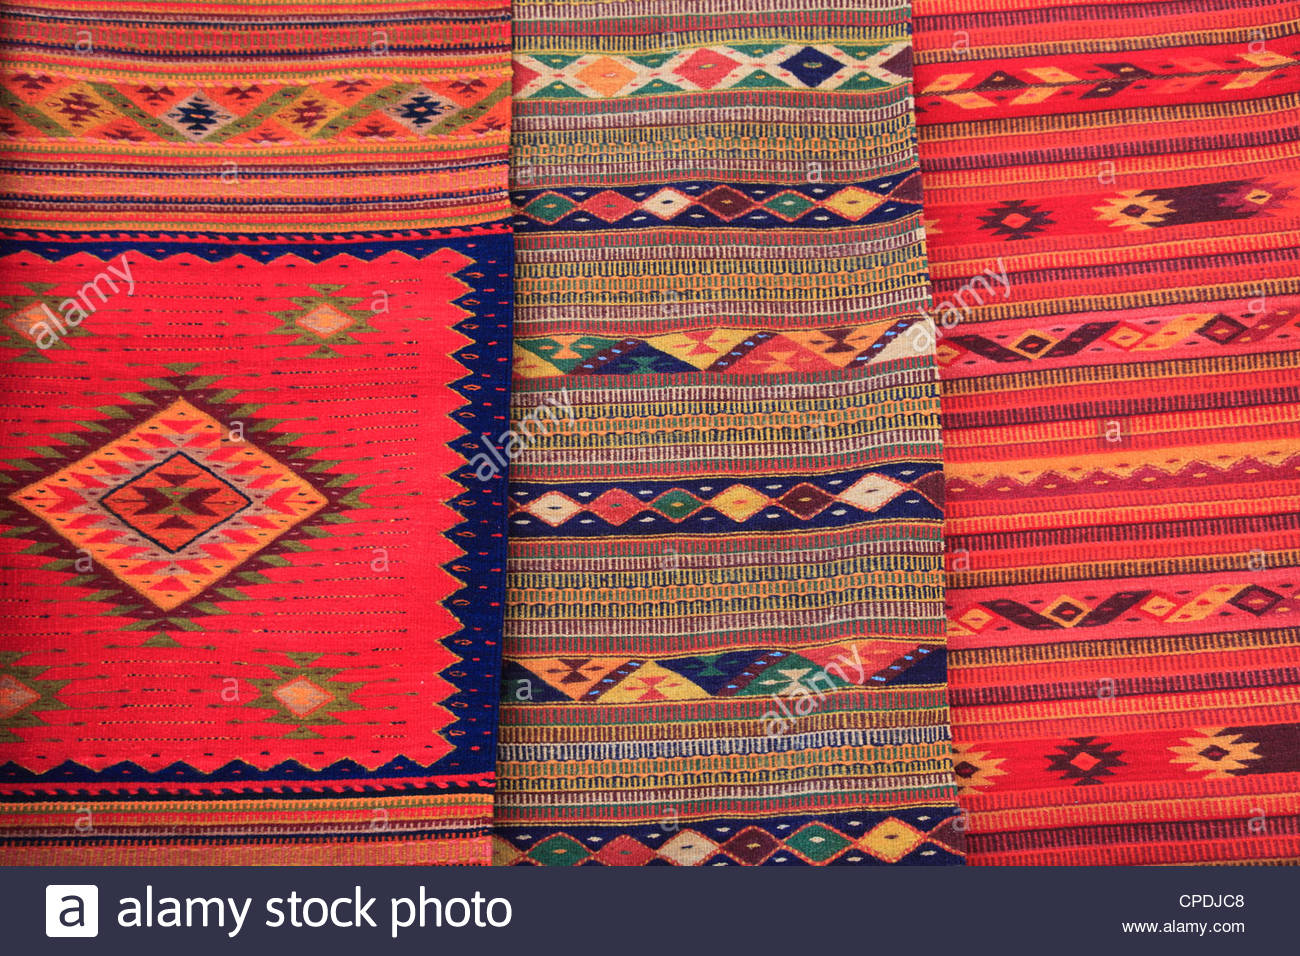 Woven rugs traditional hand woven rugs, oaxaca city, oaxaca, mexico, north america RAWIQOK